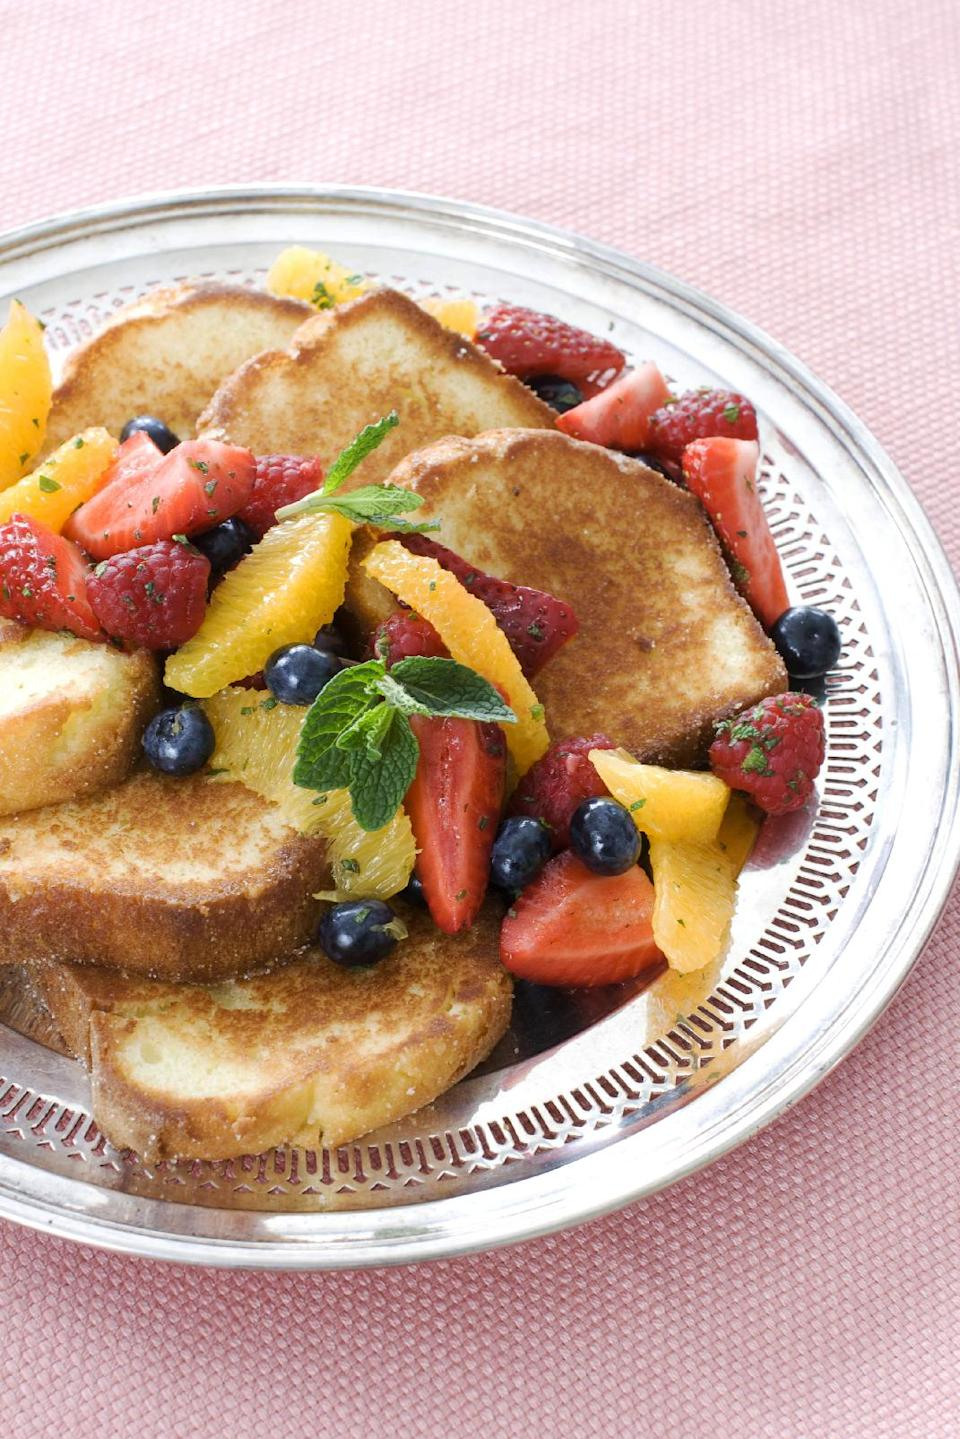 n this image taken on March 11, 2013, pan-seared pound cake with minty fruit salad is shown served on a plate in Concord, N.H. (AP Photo/Matthew Mead)